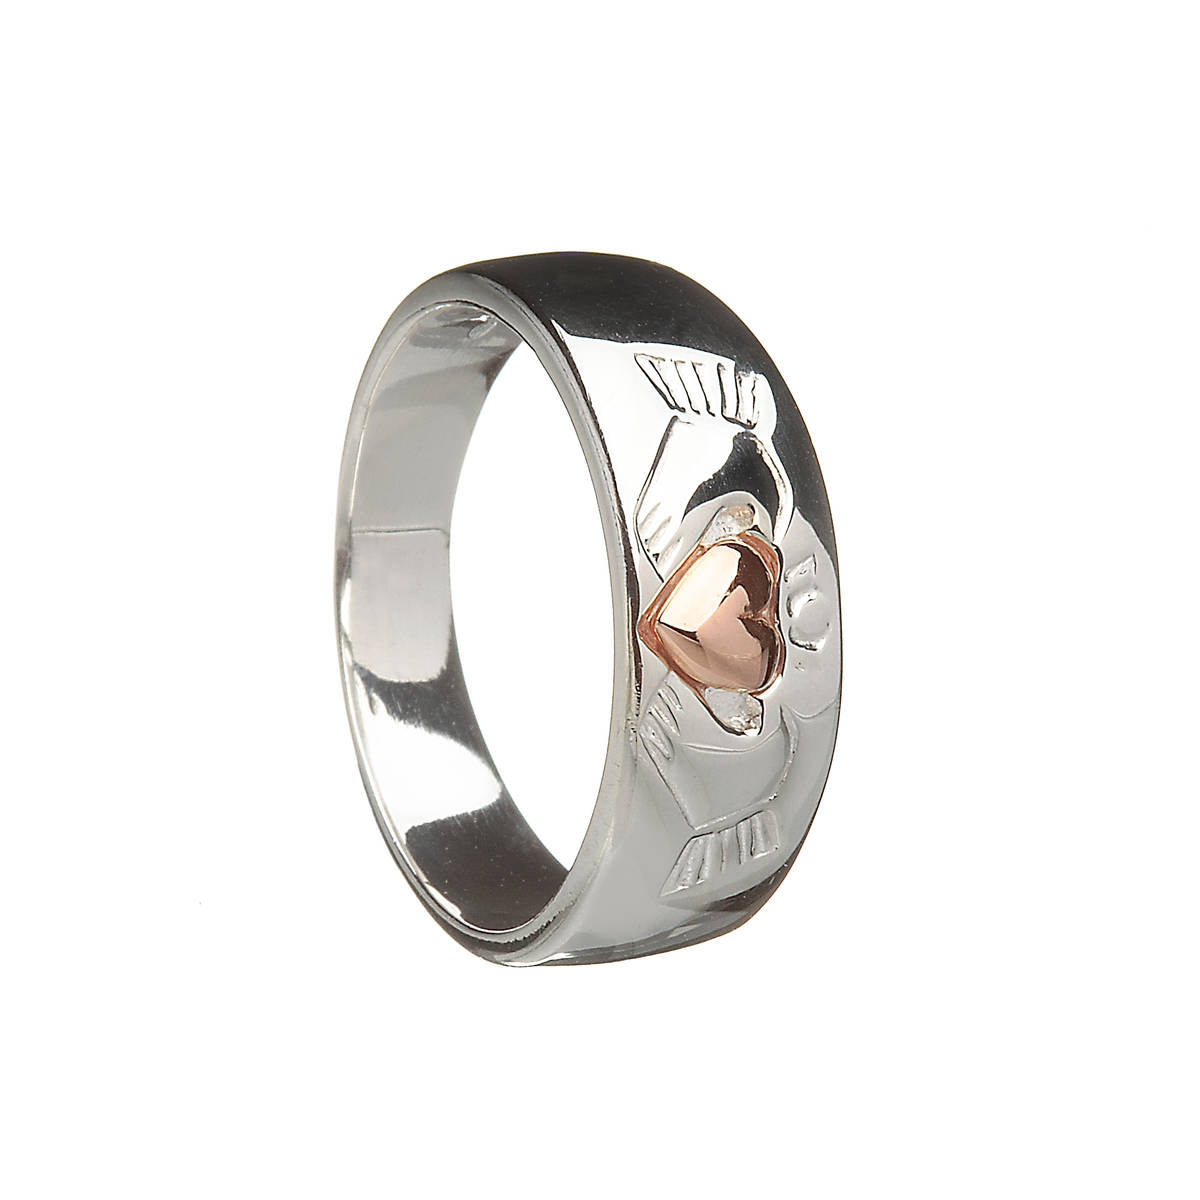 Silver ladies claddagh ring with rose gold plated heart.